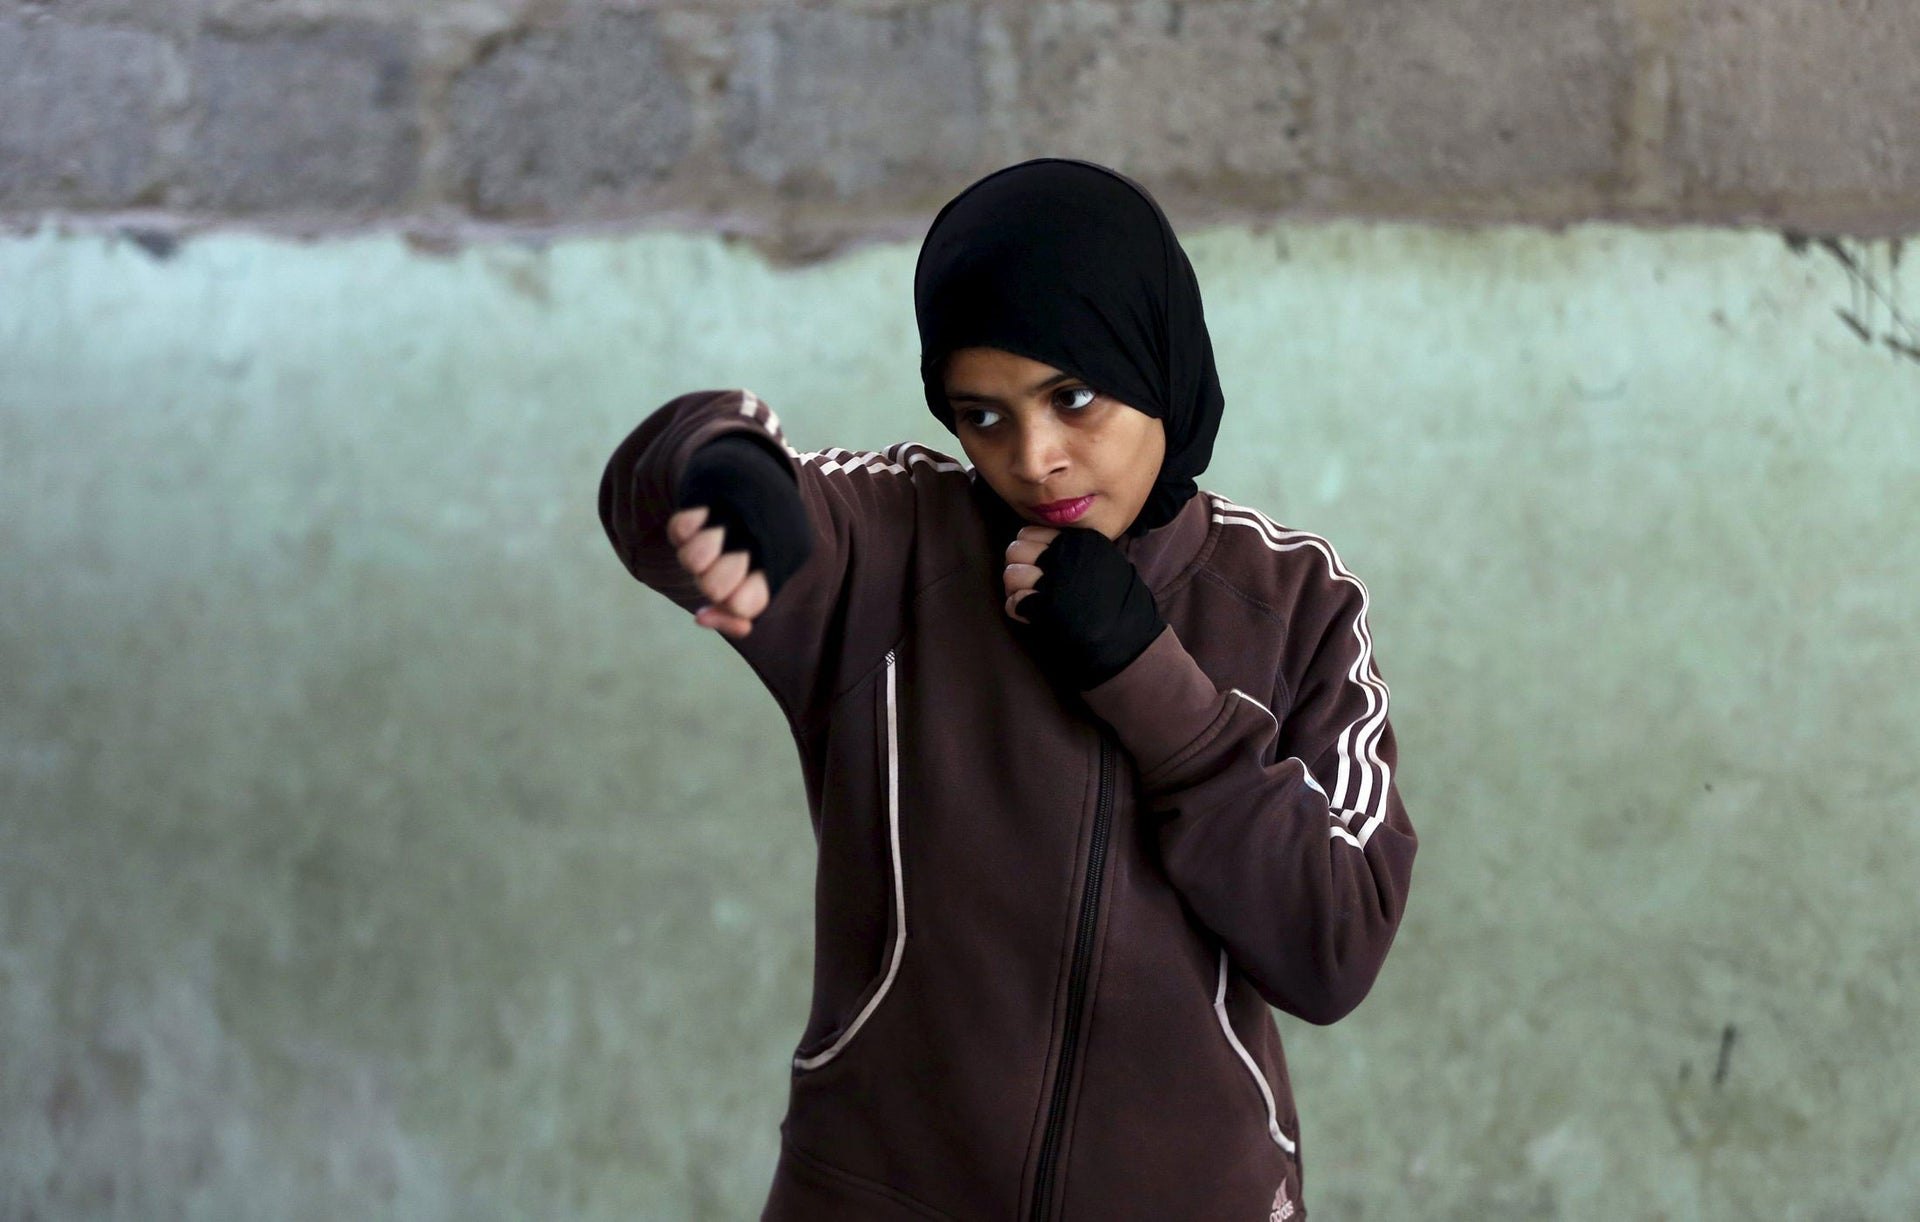 Misbah, 17, does warm up exercises at the first women's boxing camp in Karachi, on February 19, 2016.